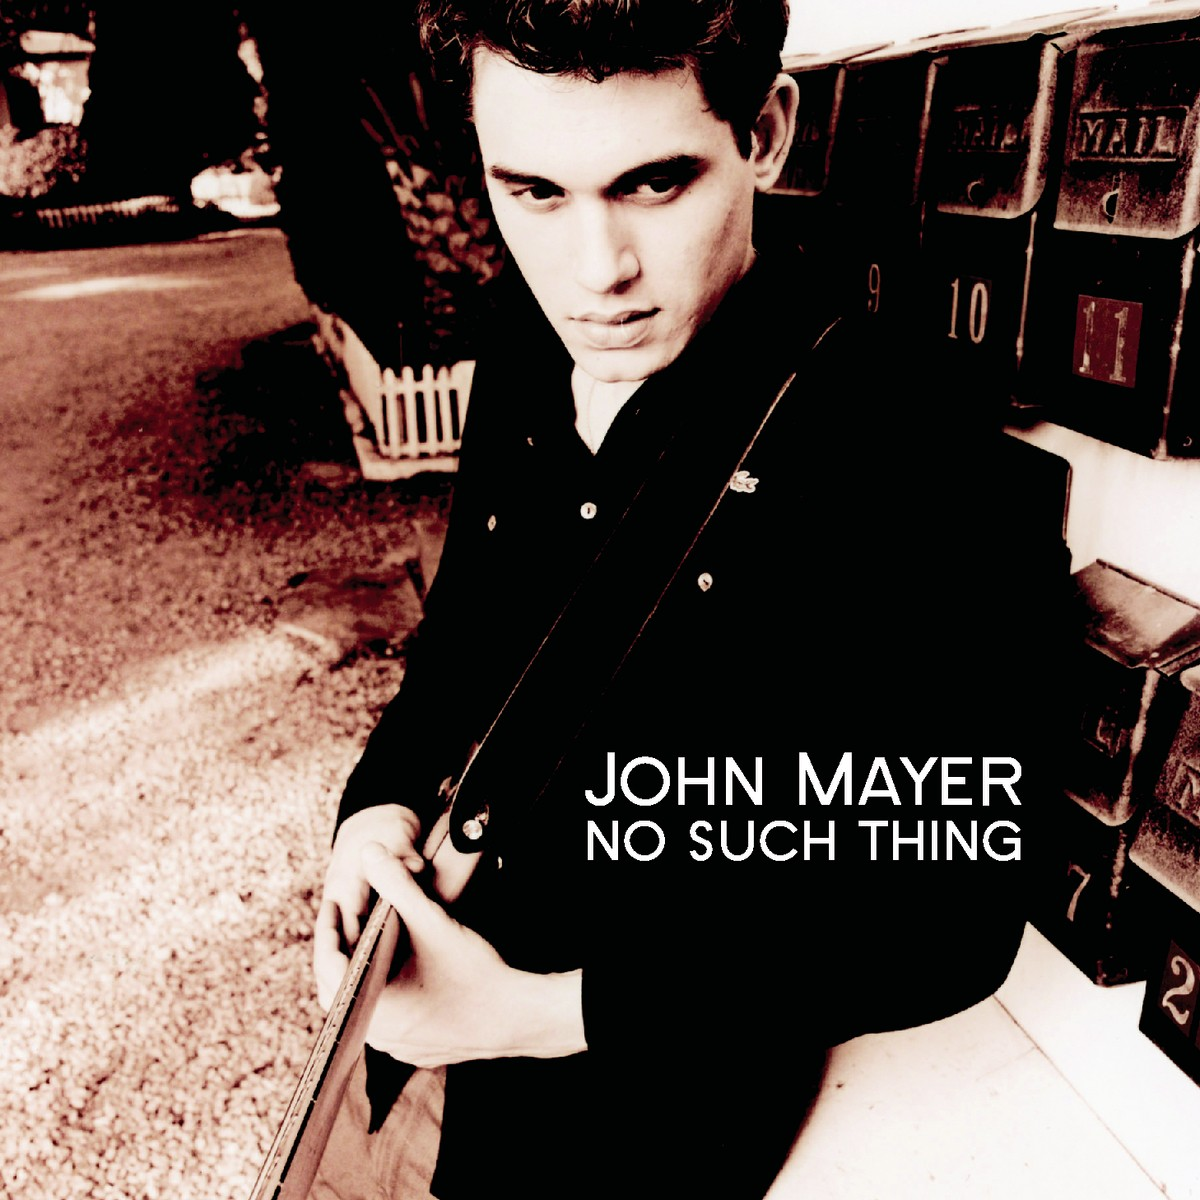 John Mayer Cool Painting: The Architect & Painter